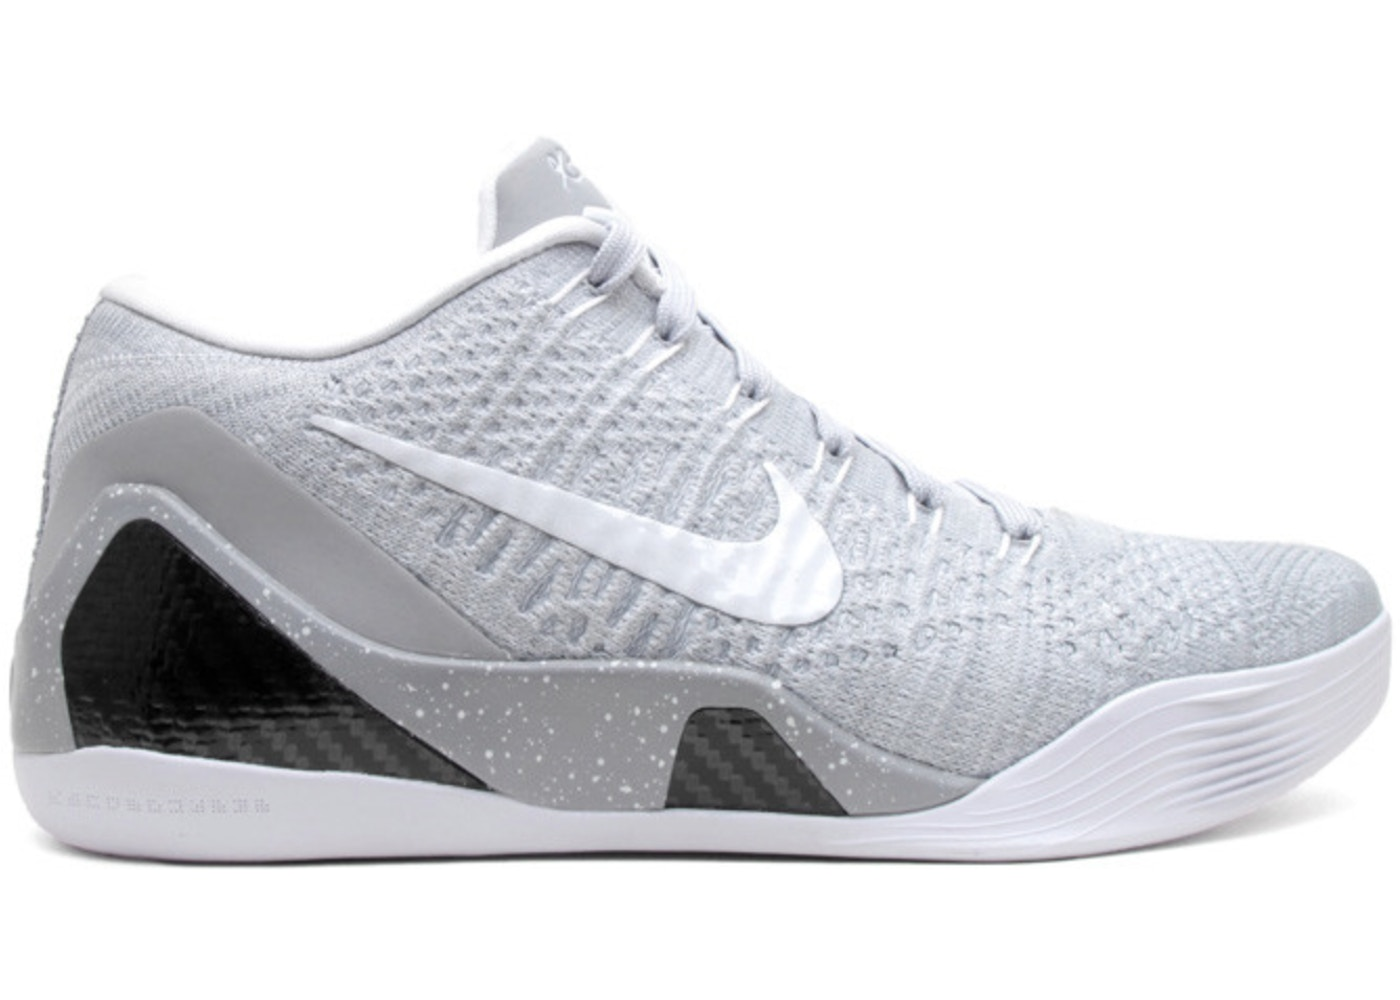 reputable site 925f1 c38ee Kobe 9 Elite Premium Low HTM Milan Grey - 698595-010